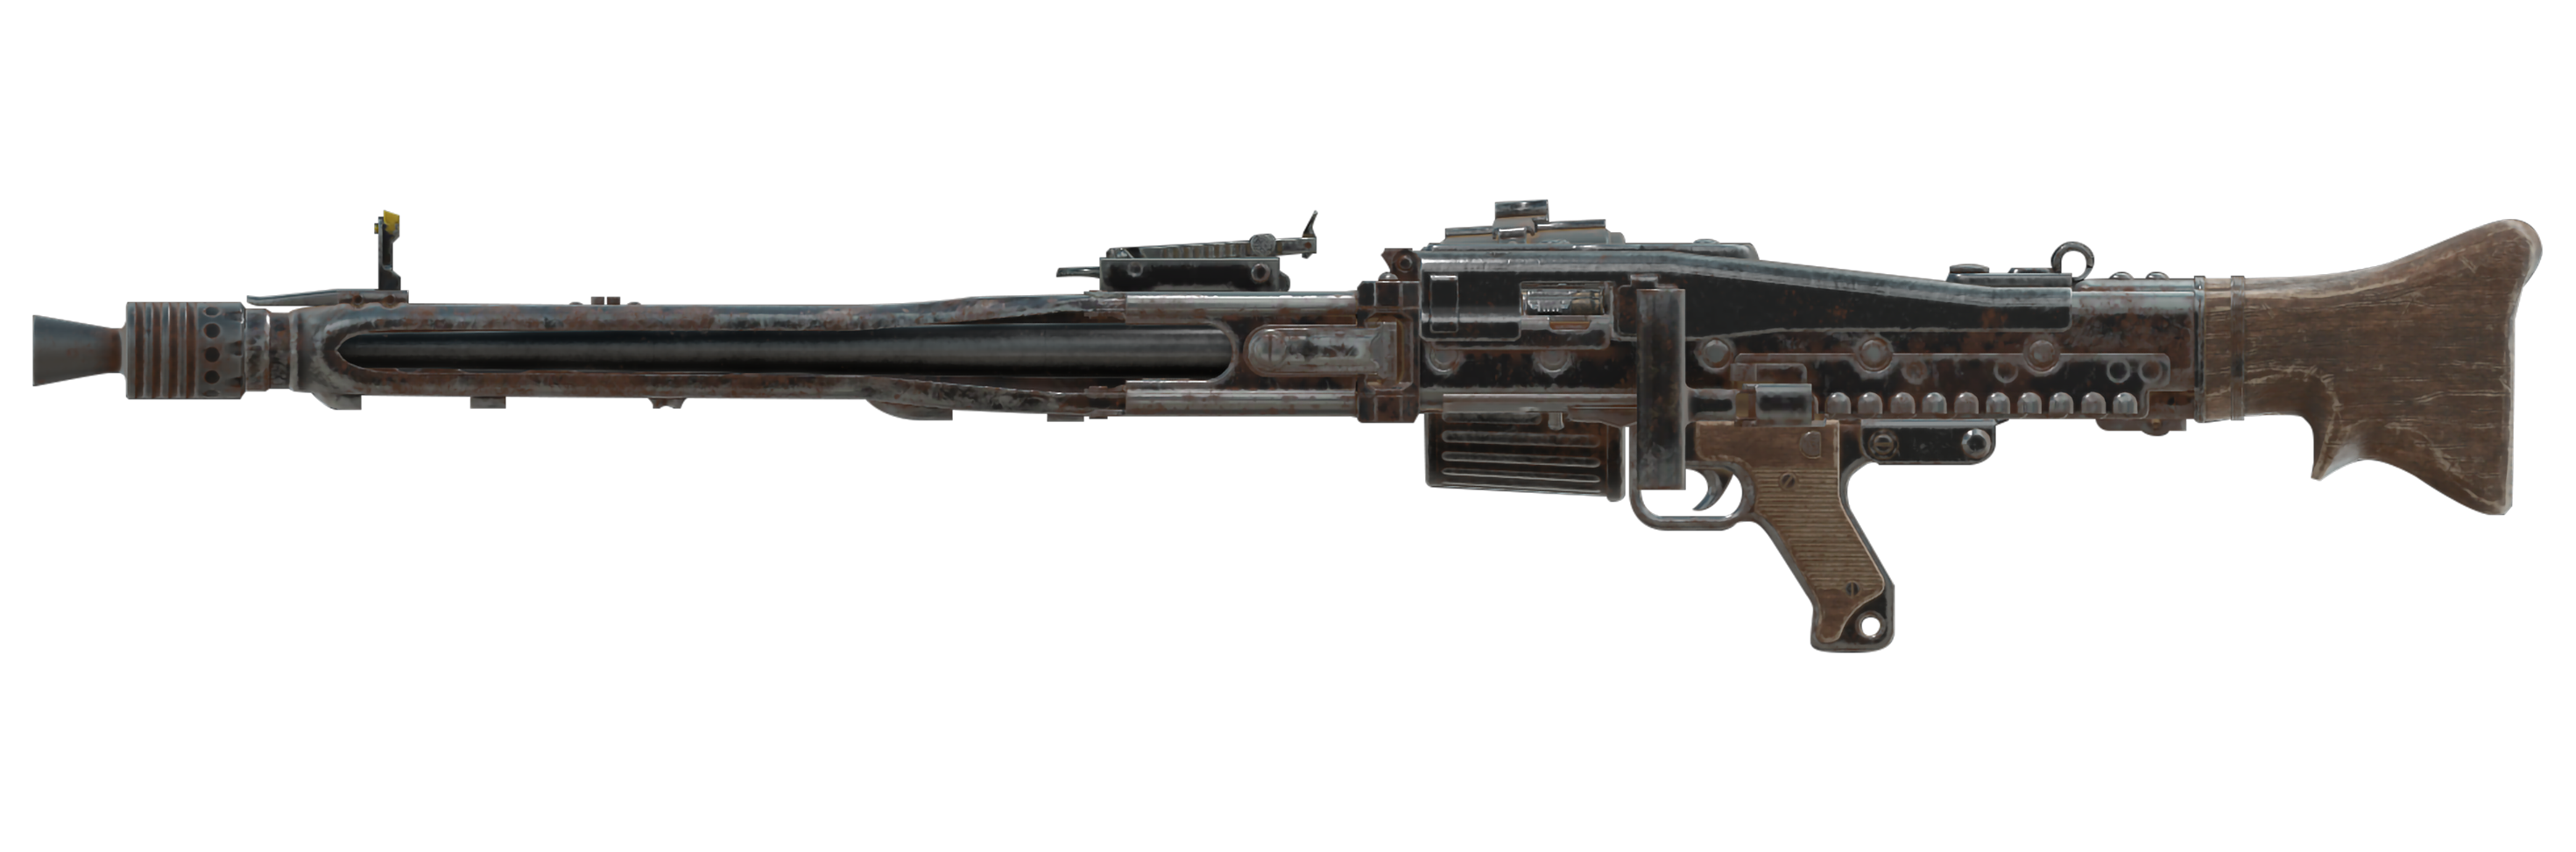 Light machine gun (Fallout 76) | Fallout Wiki | FANDOM